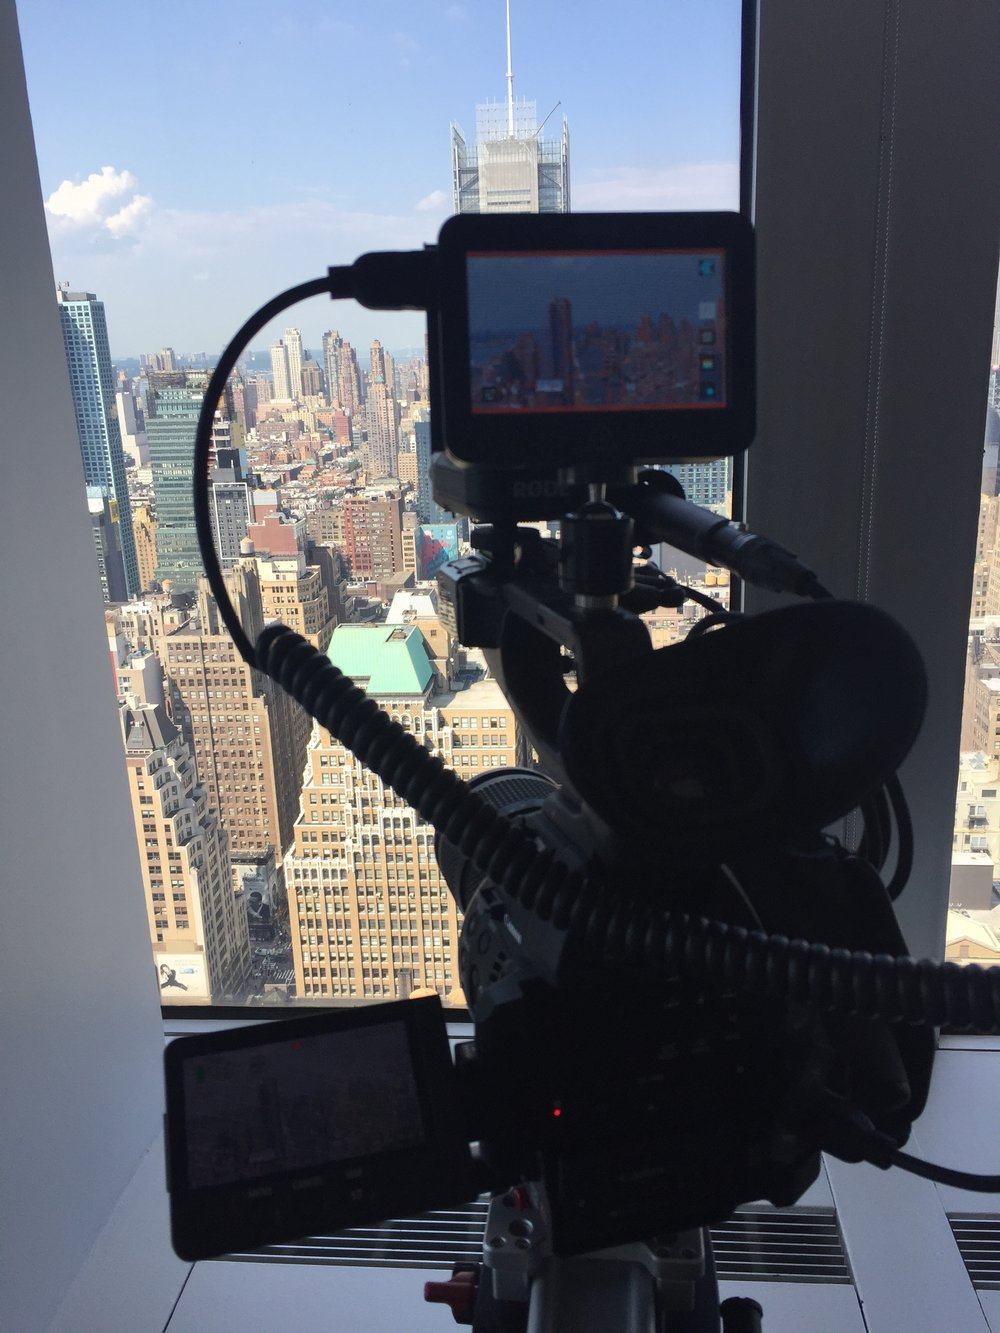 My Canon C100 mk ii & Ninja monitor/recorder filming out of a New York high-rise.